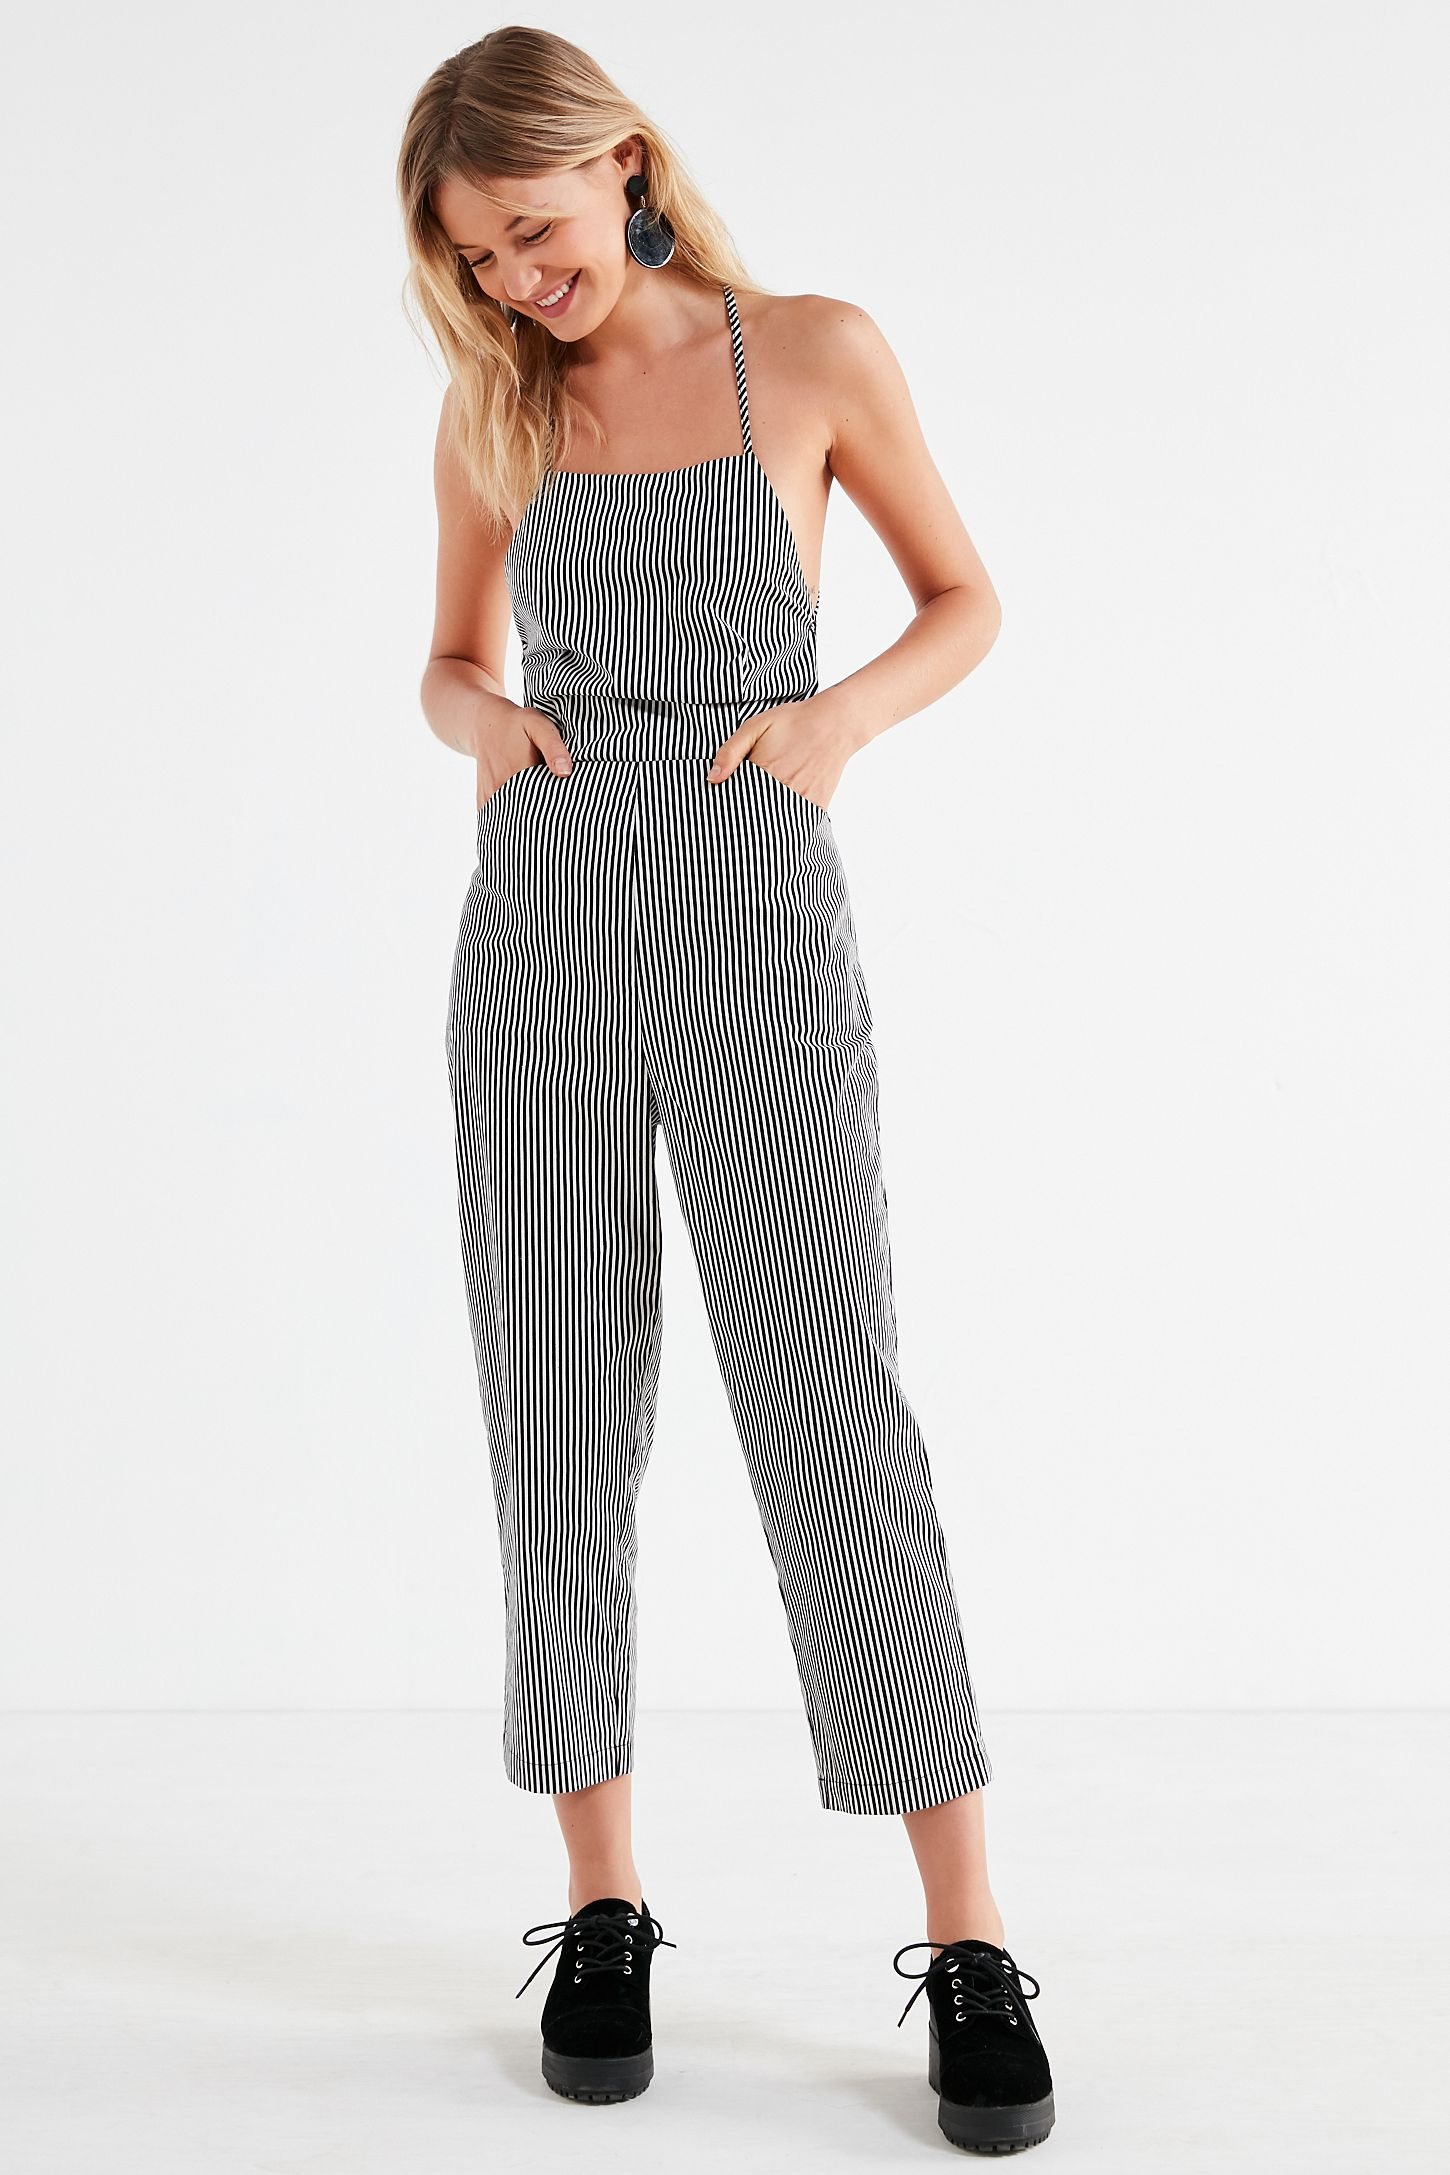 c4f56fb6e9 Silence + Noise Strappy Striped Culotte Jumpsuit